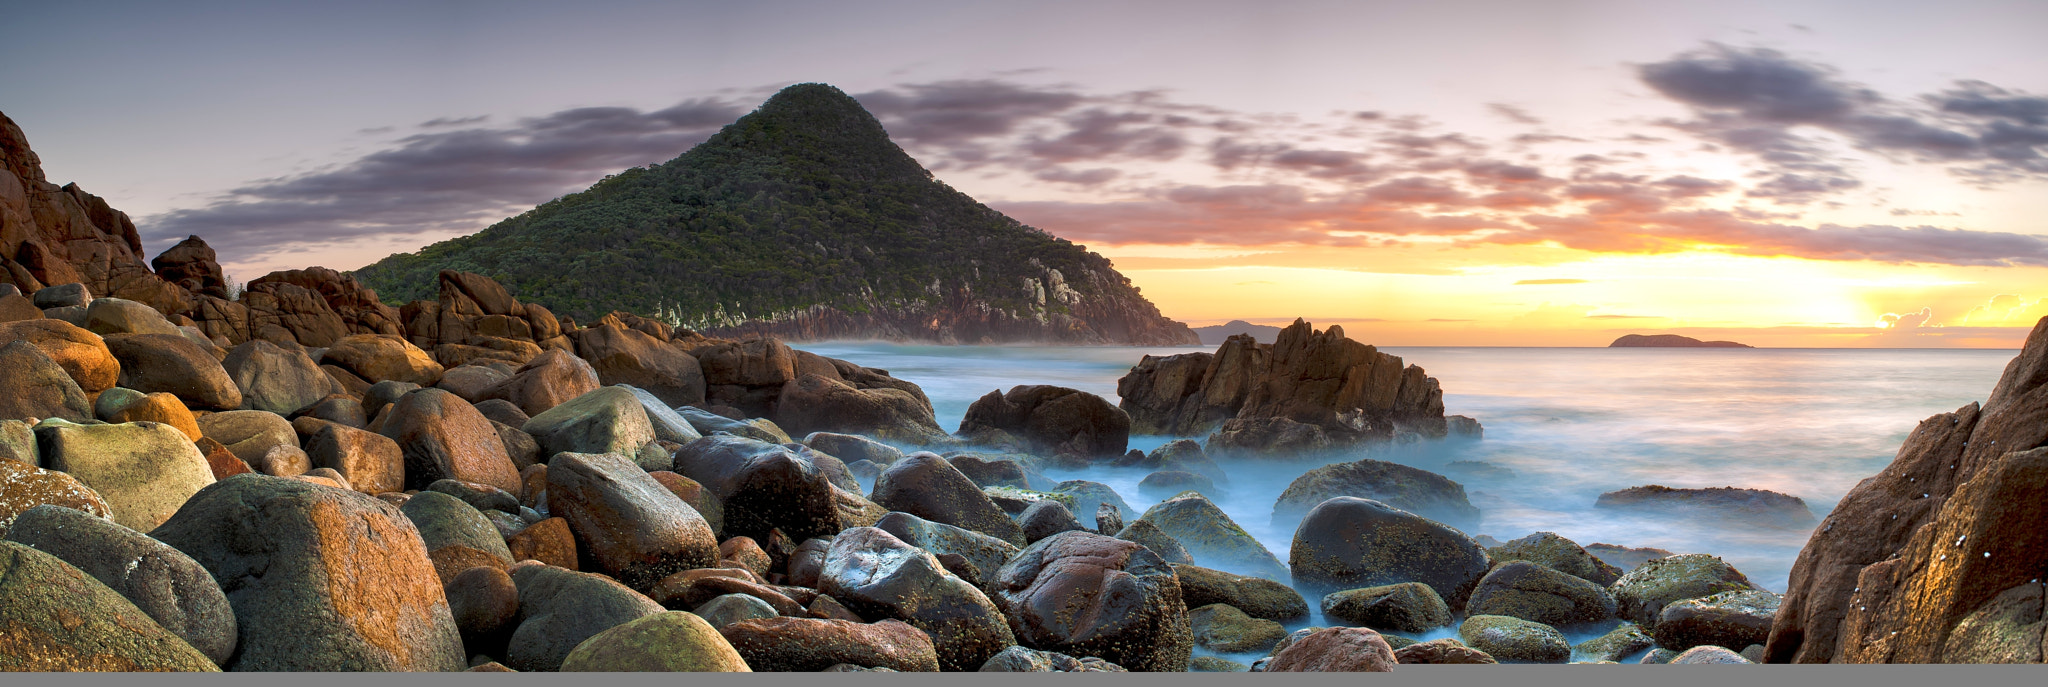 Photograph Amidst the Swell by Timothy Poulton on 500px